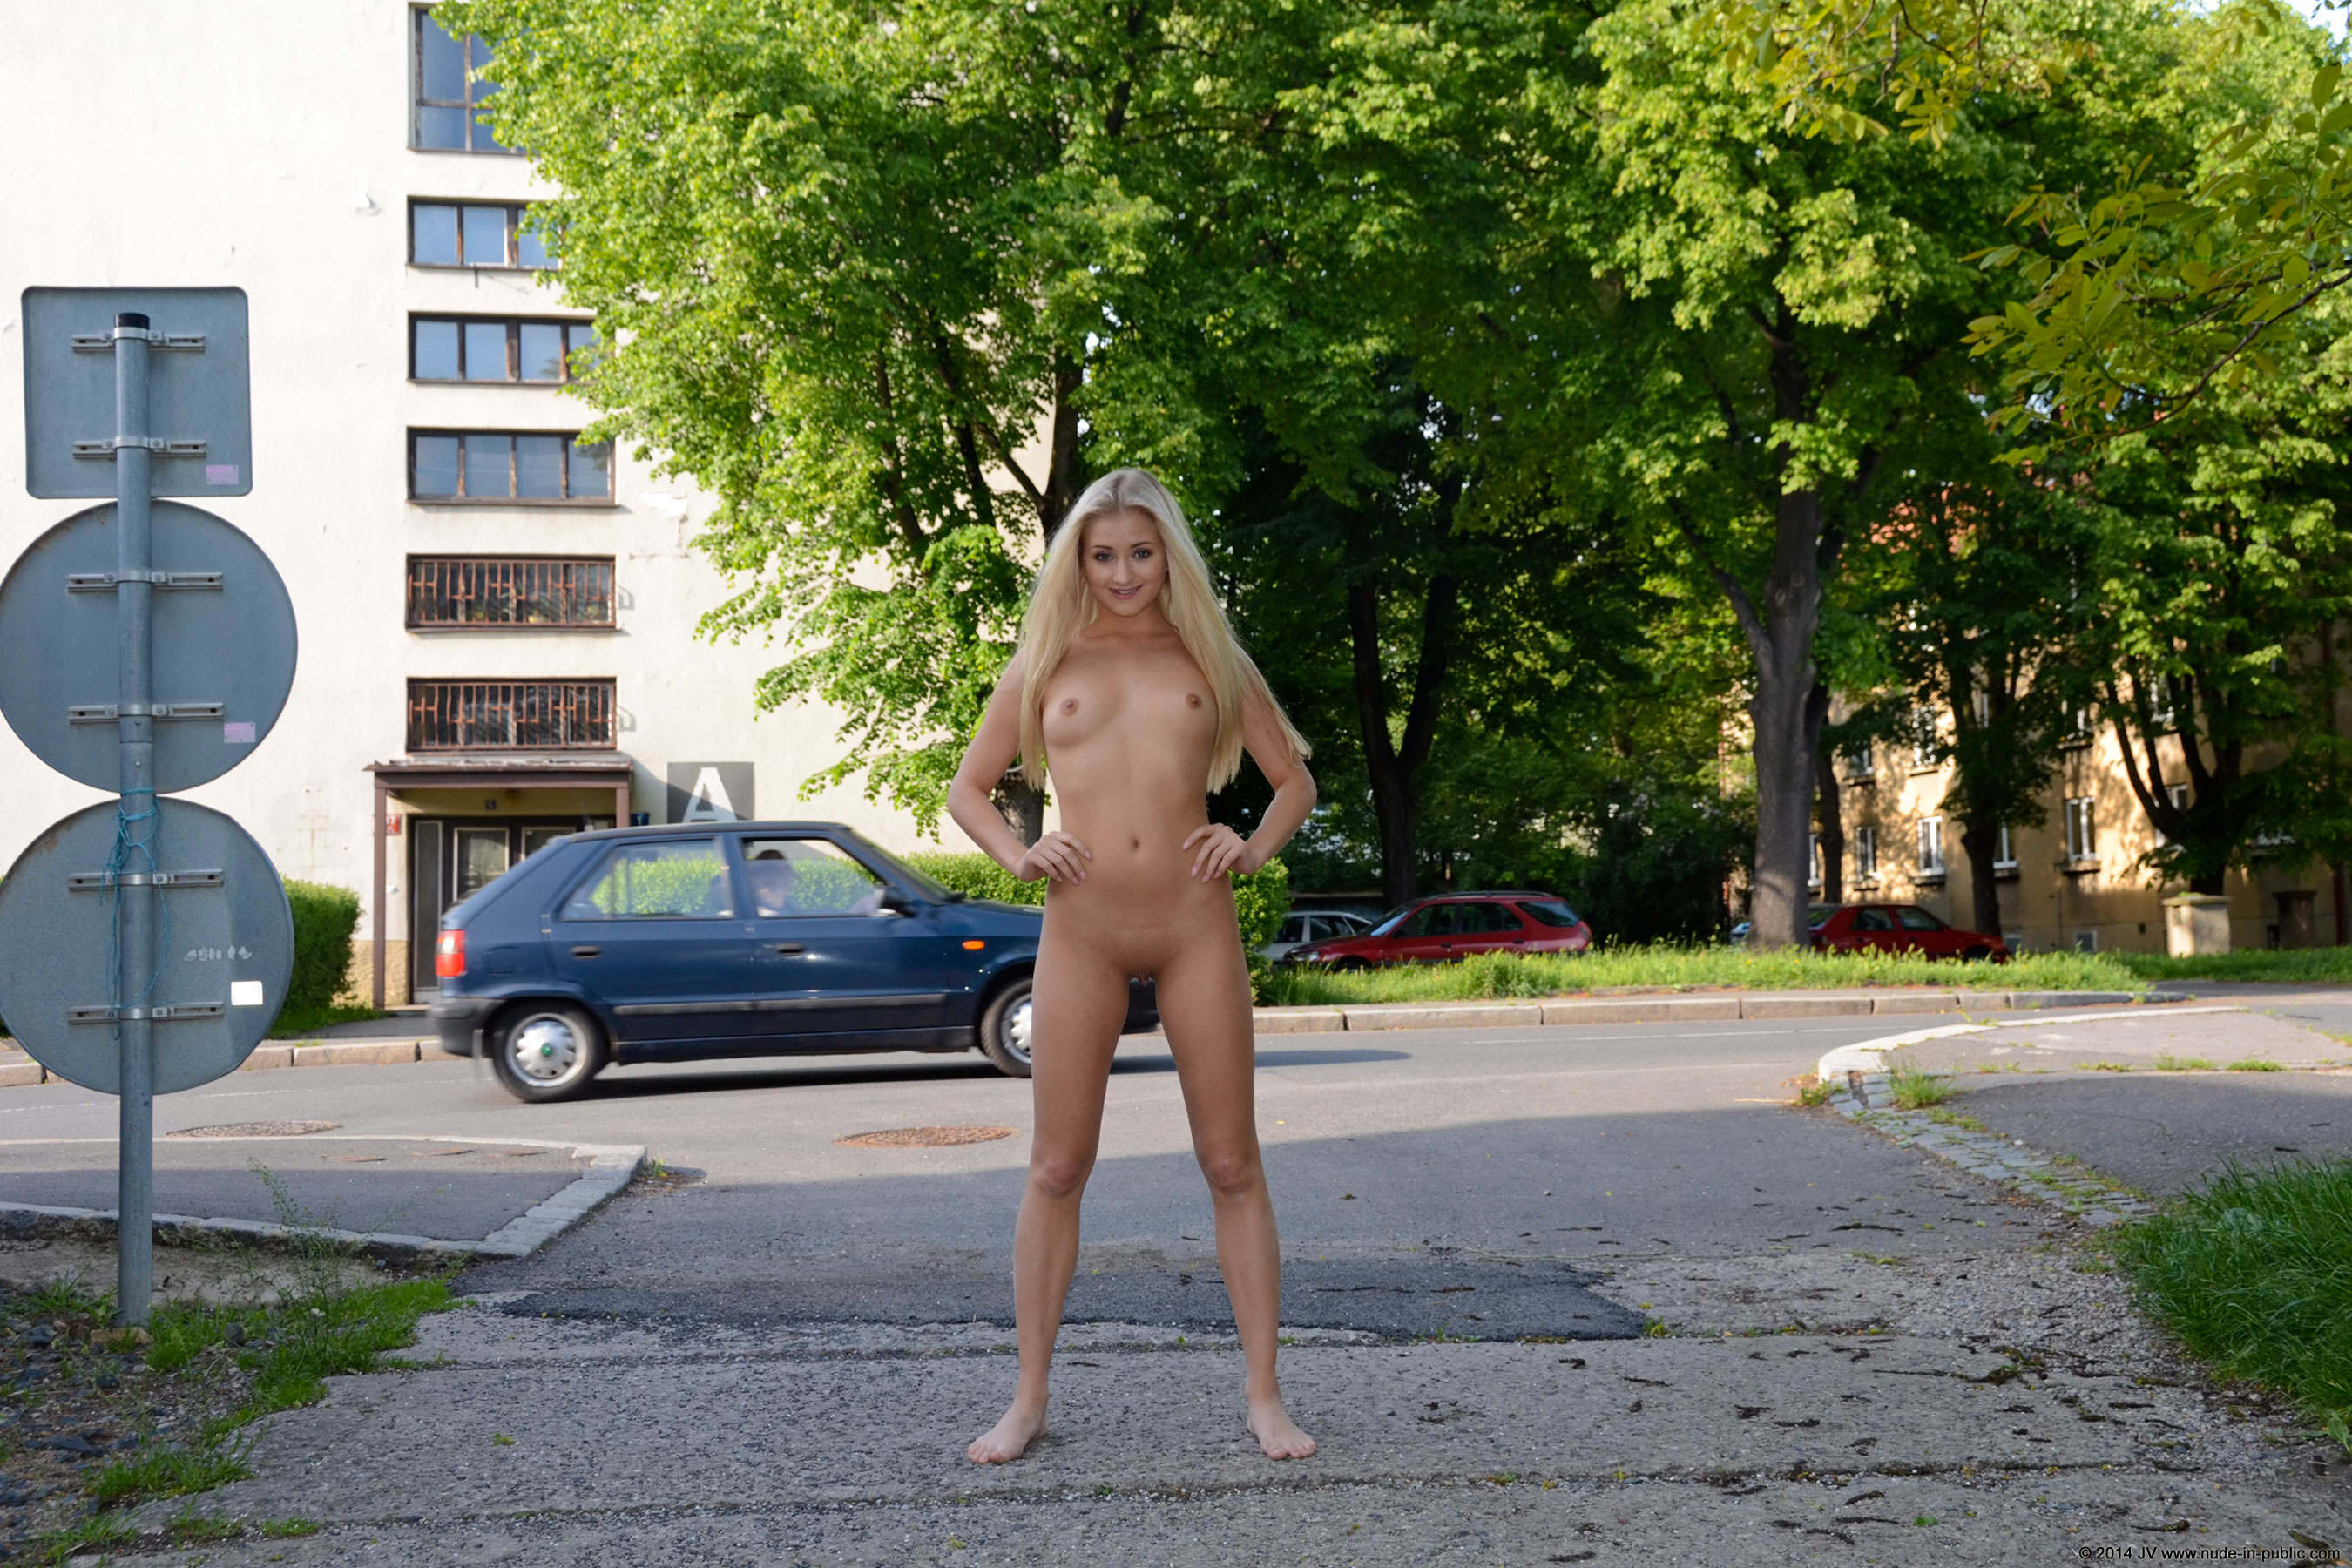 karolina-m-blonde-on-the-street-nude-in-public-21